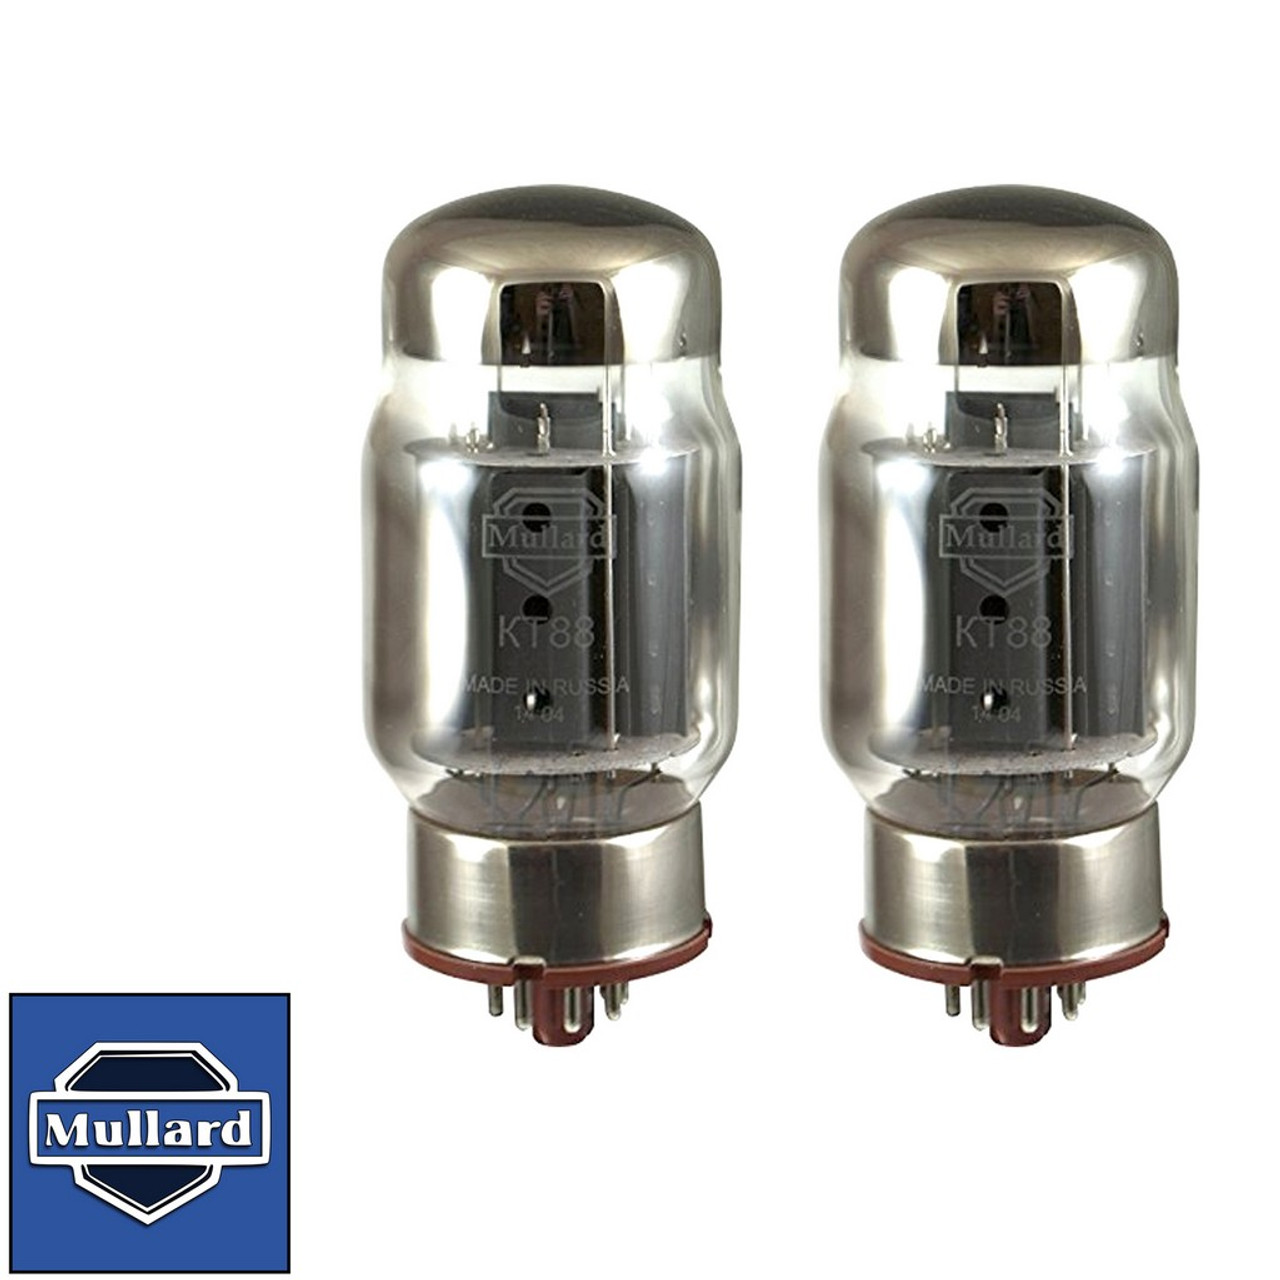 New Plate Current Matched Pair 2 Tung-Sol Reissue 6550 KT88 Coke Bottle Tubes